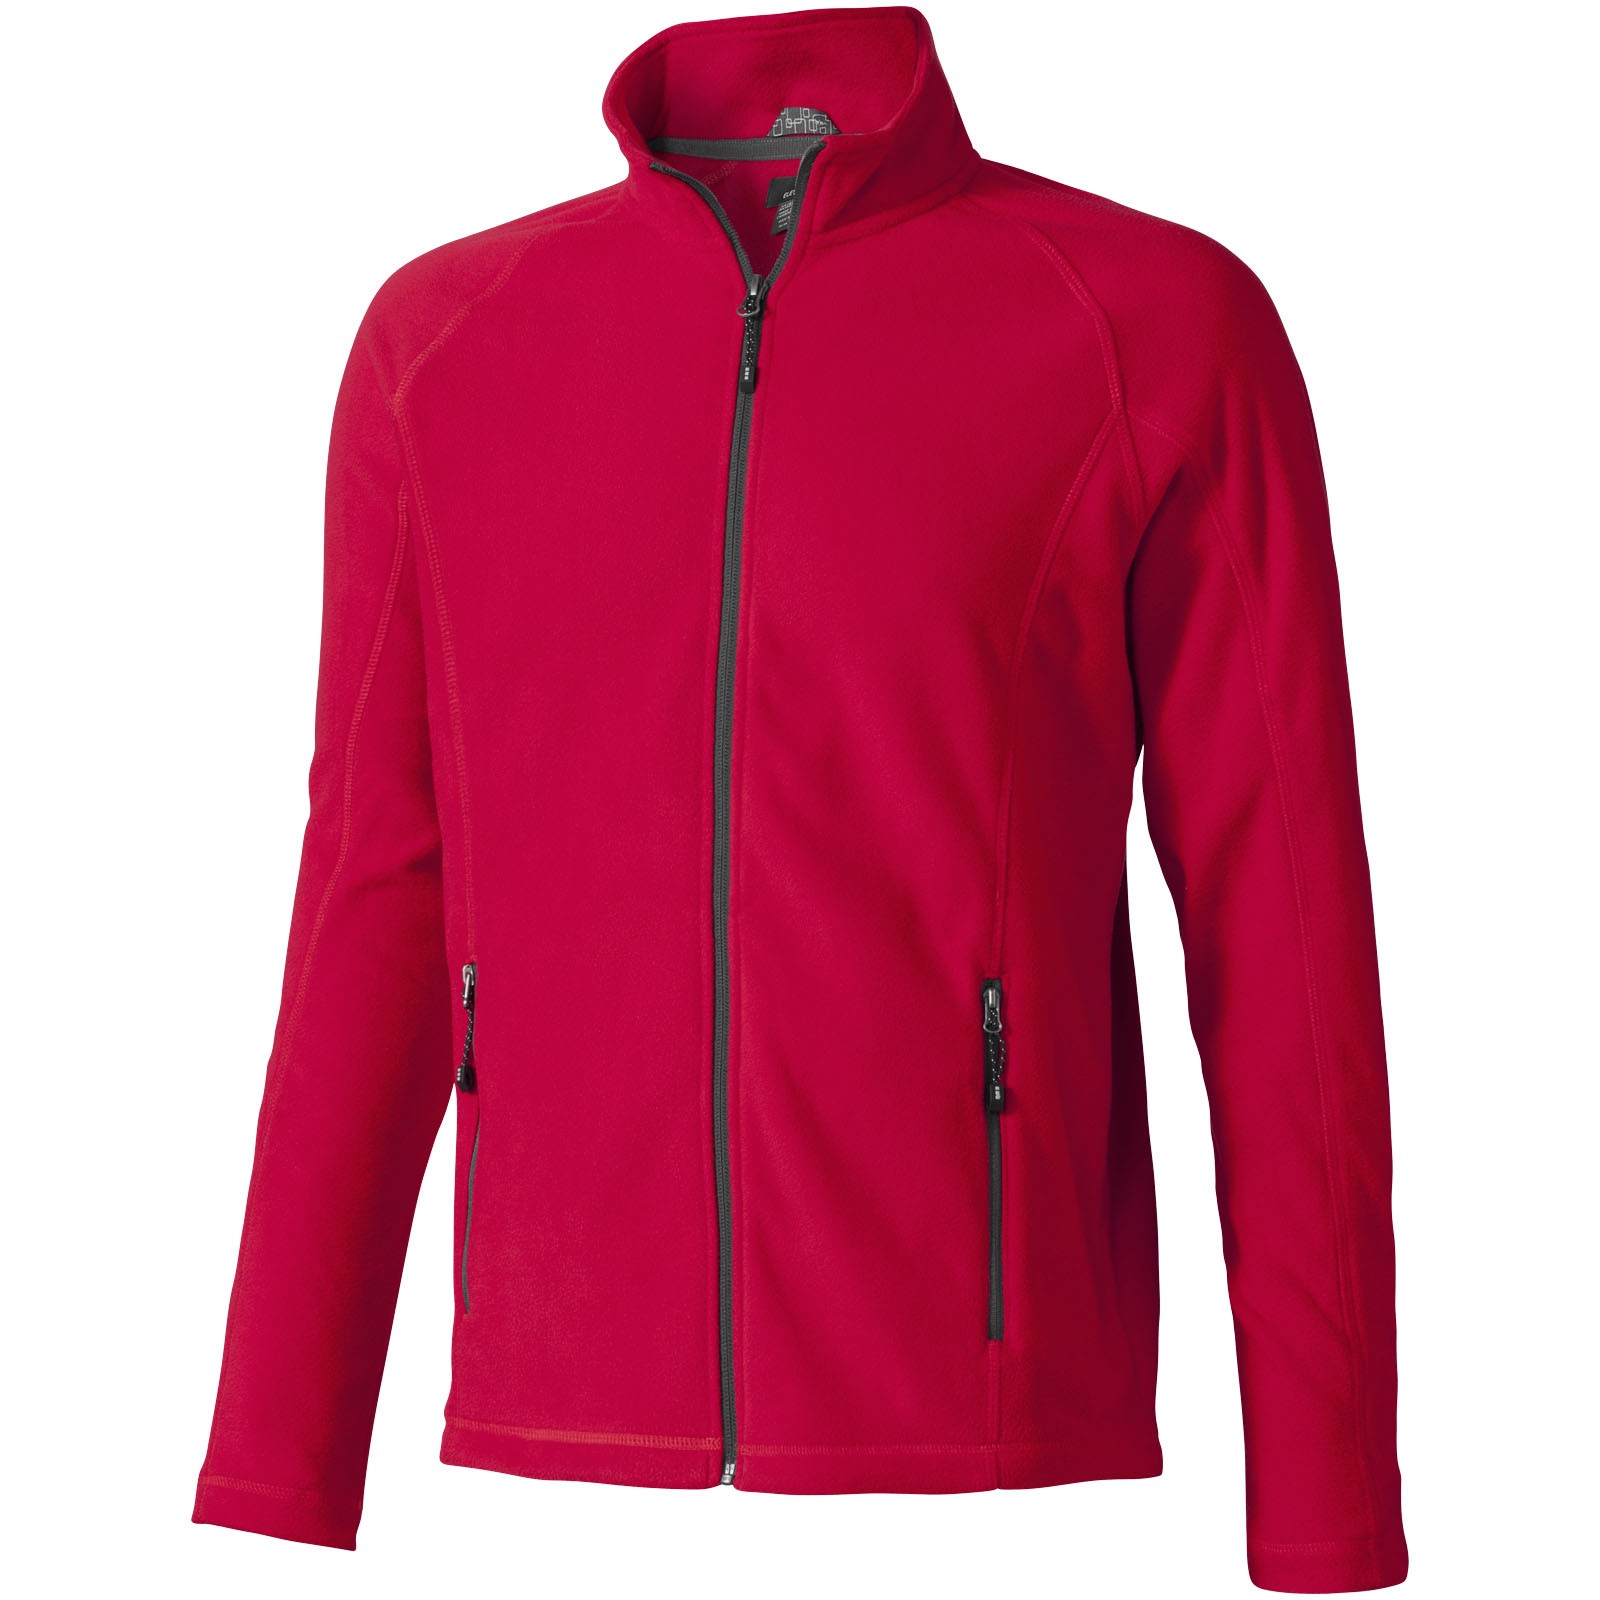 Rixford polyfleece full zip - Red / XL